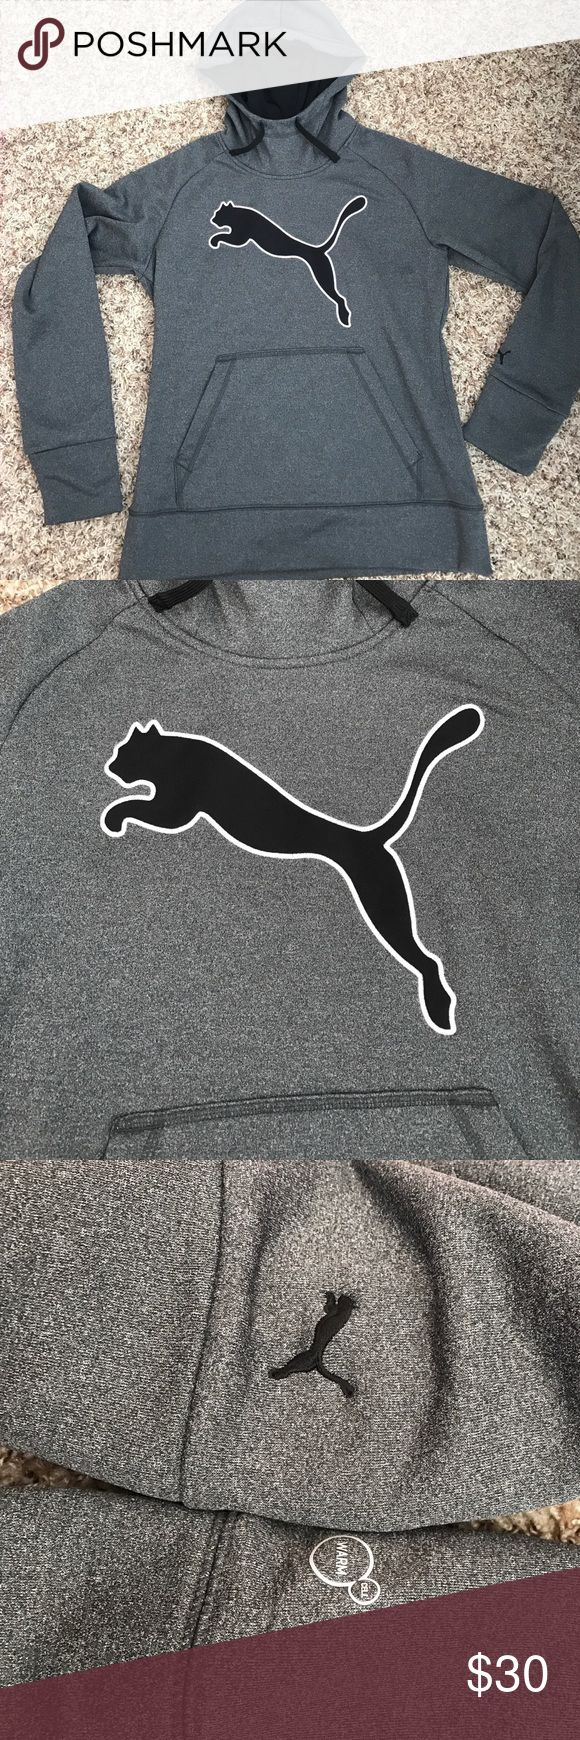 Gray and black PUMA sweatshirt Very soft and warm PUMA sweatshirt, worn maybe once or twice, in perfect condition! Puma Tops Sweatshirts & Hoodies